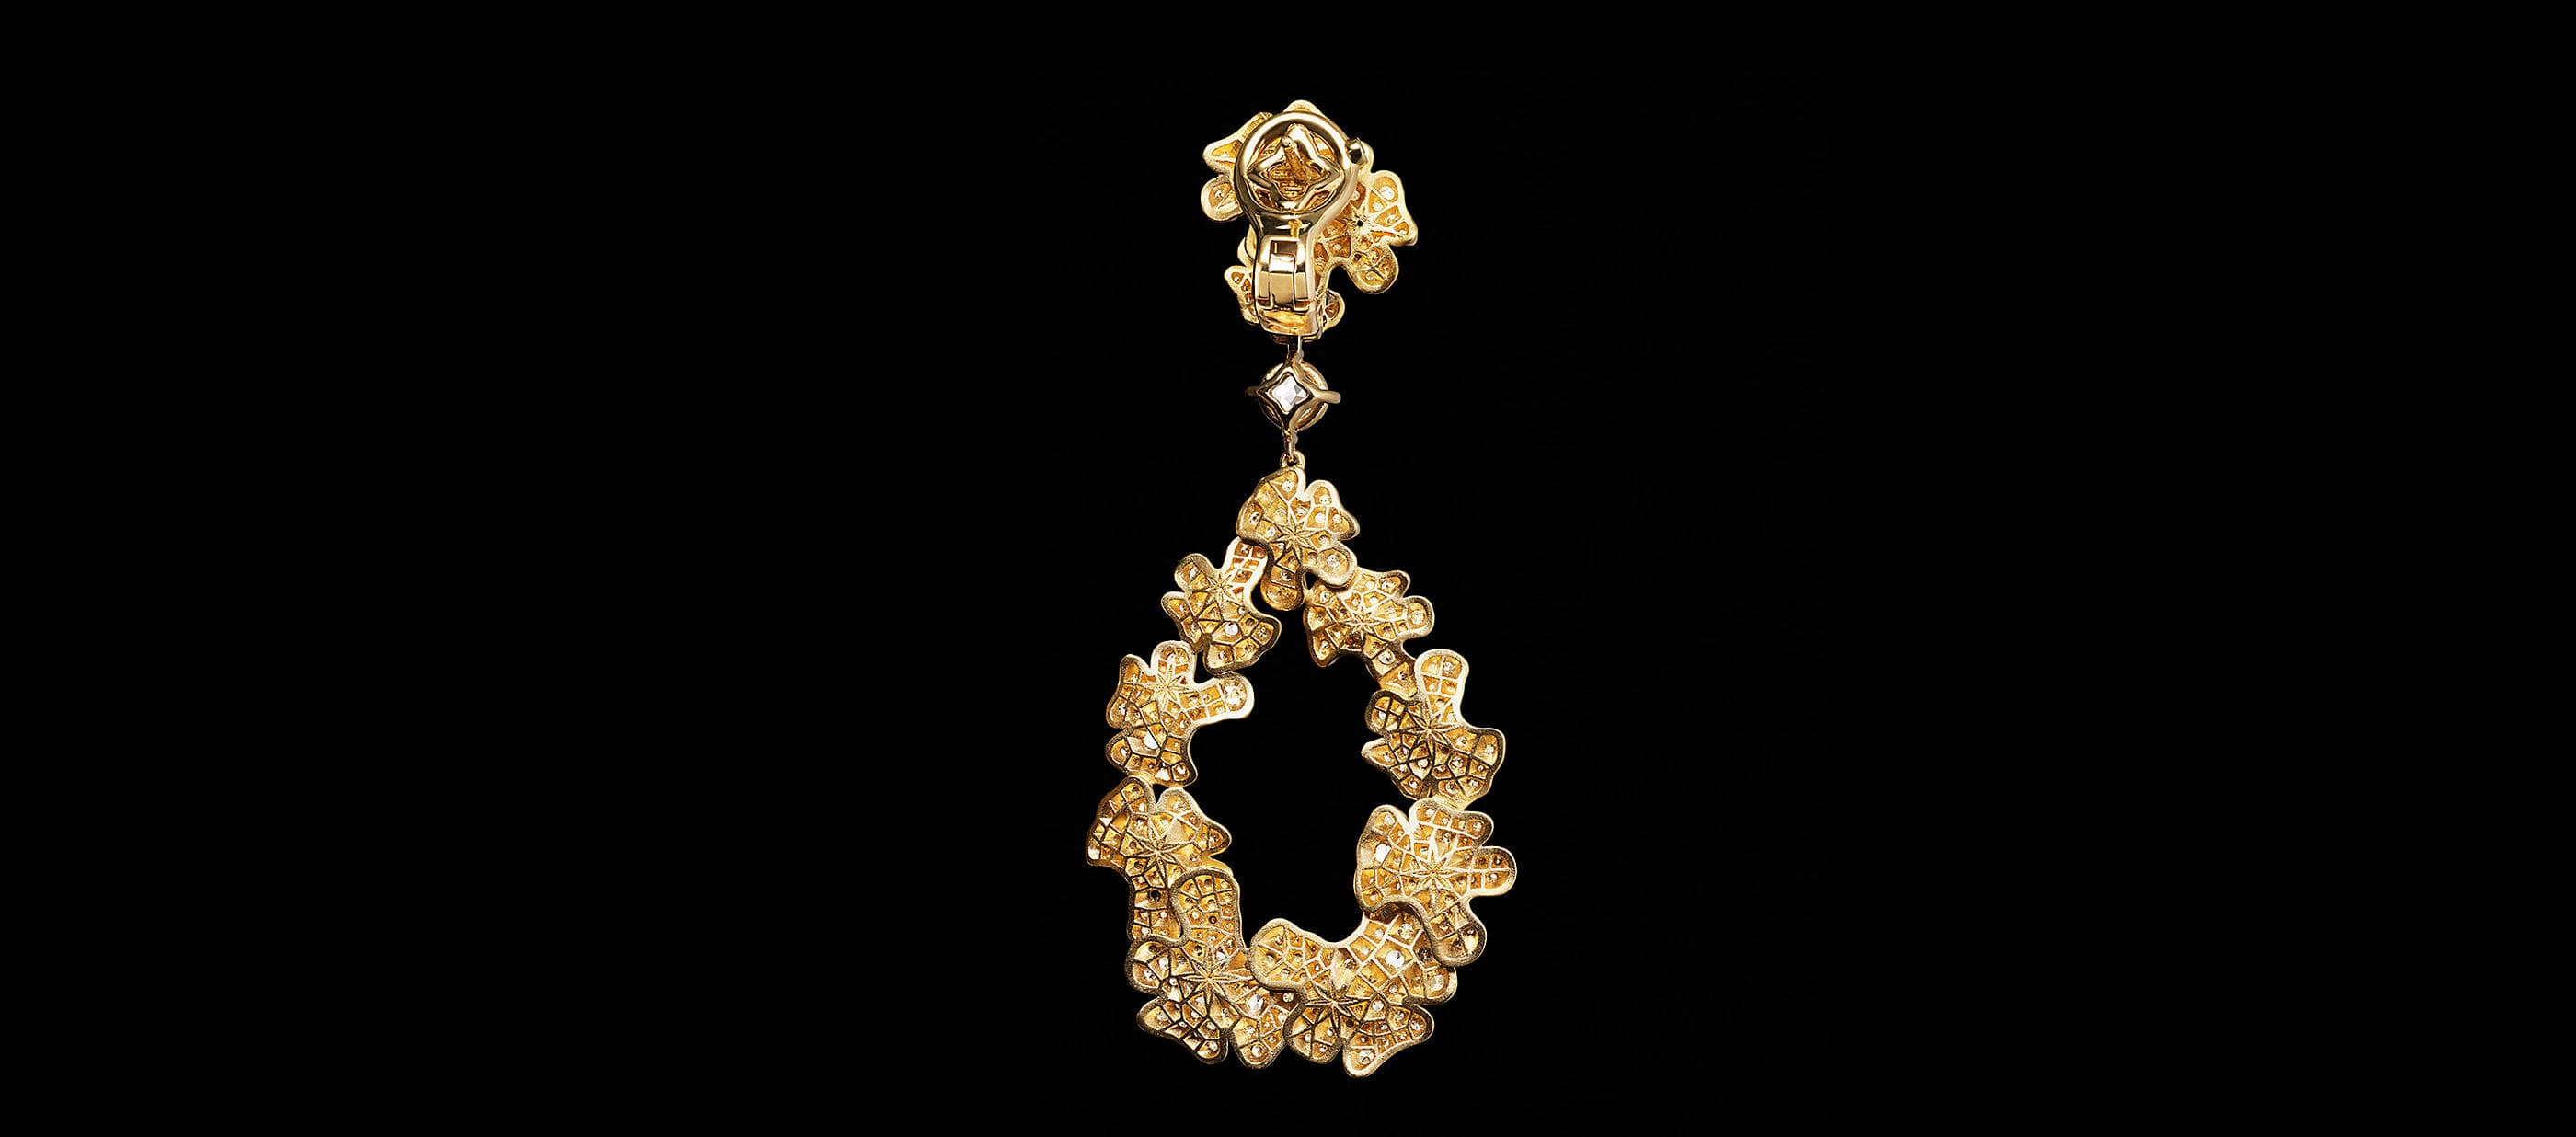 An image showing the back of a Yellow Gold HJ petals drop earring